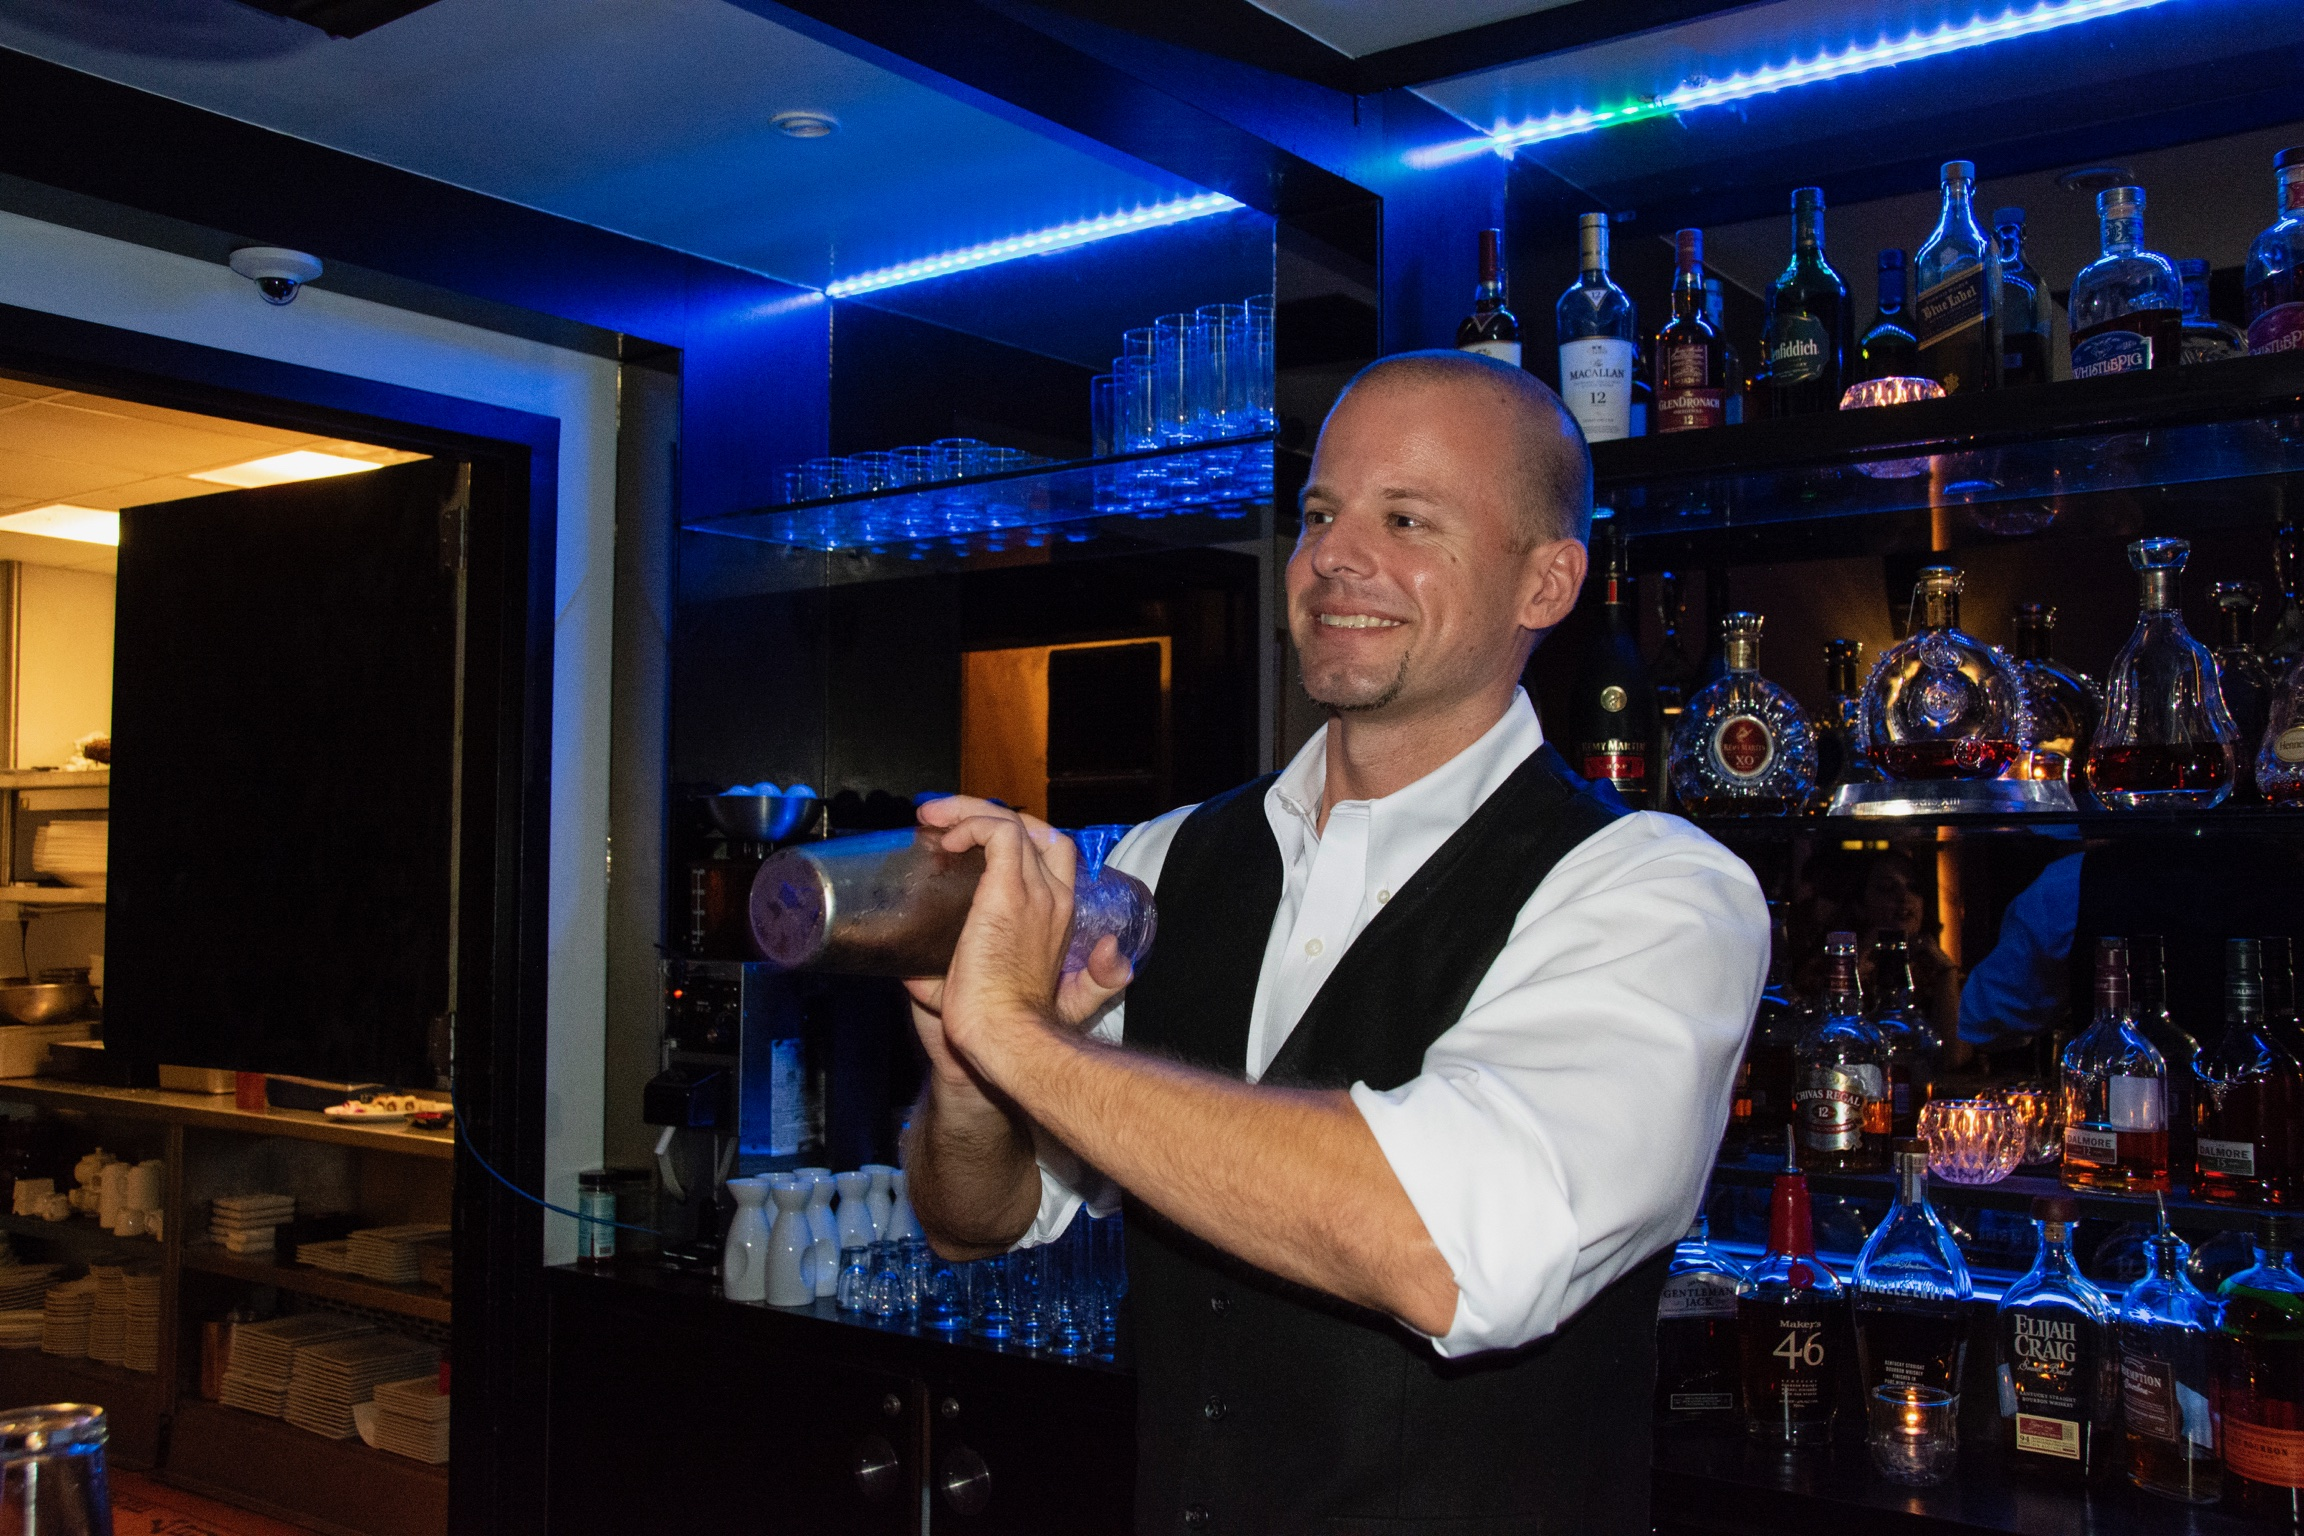 Bartender at SkyBar